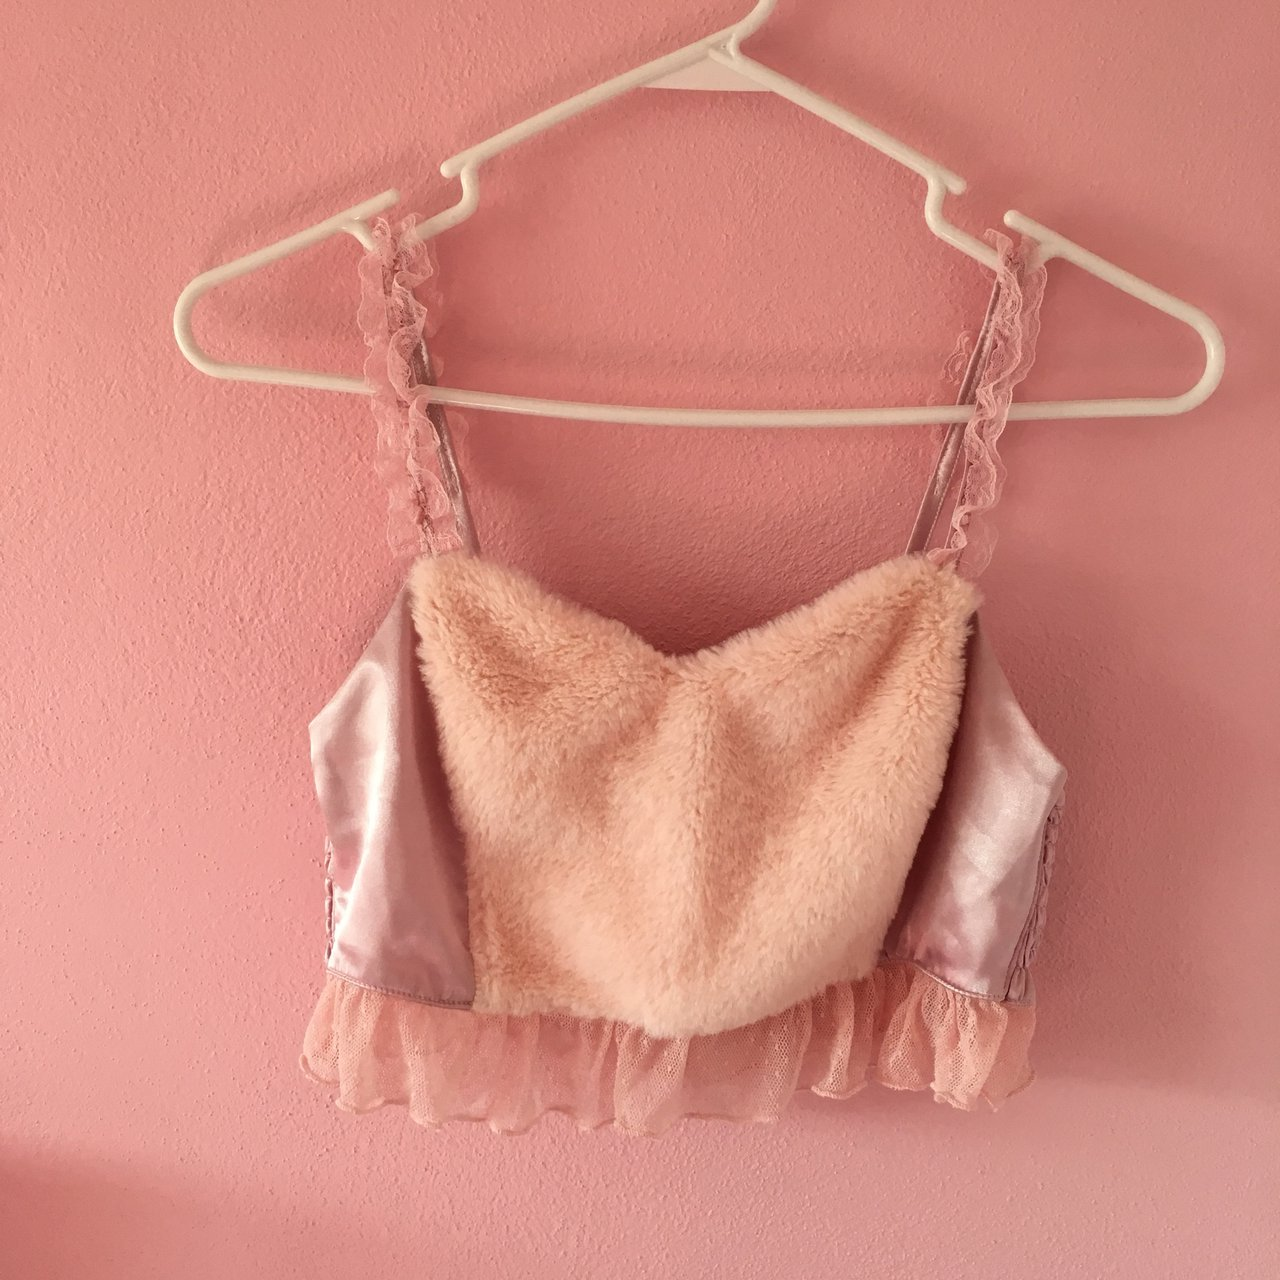 7c72ab56883bb Spinns fur and lace bralette. It s one size but the back is - Depop